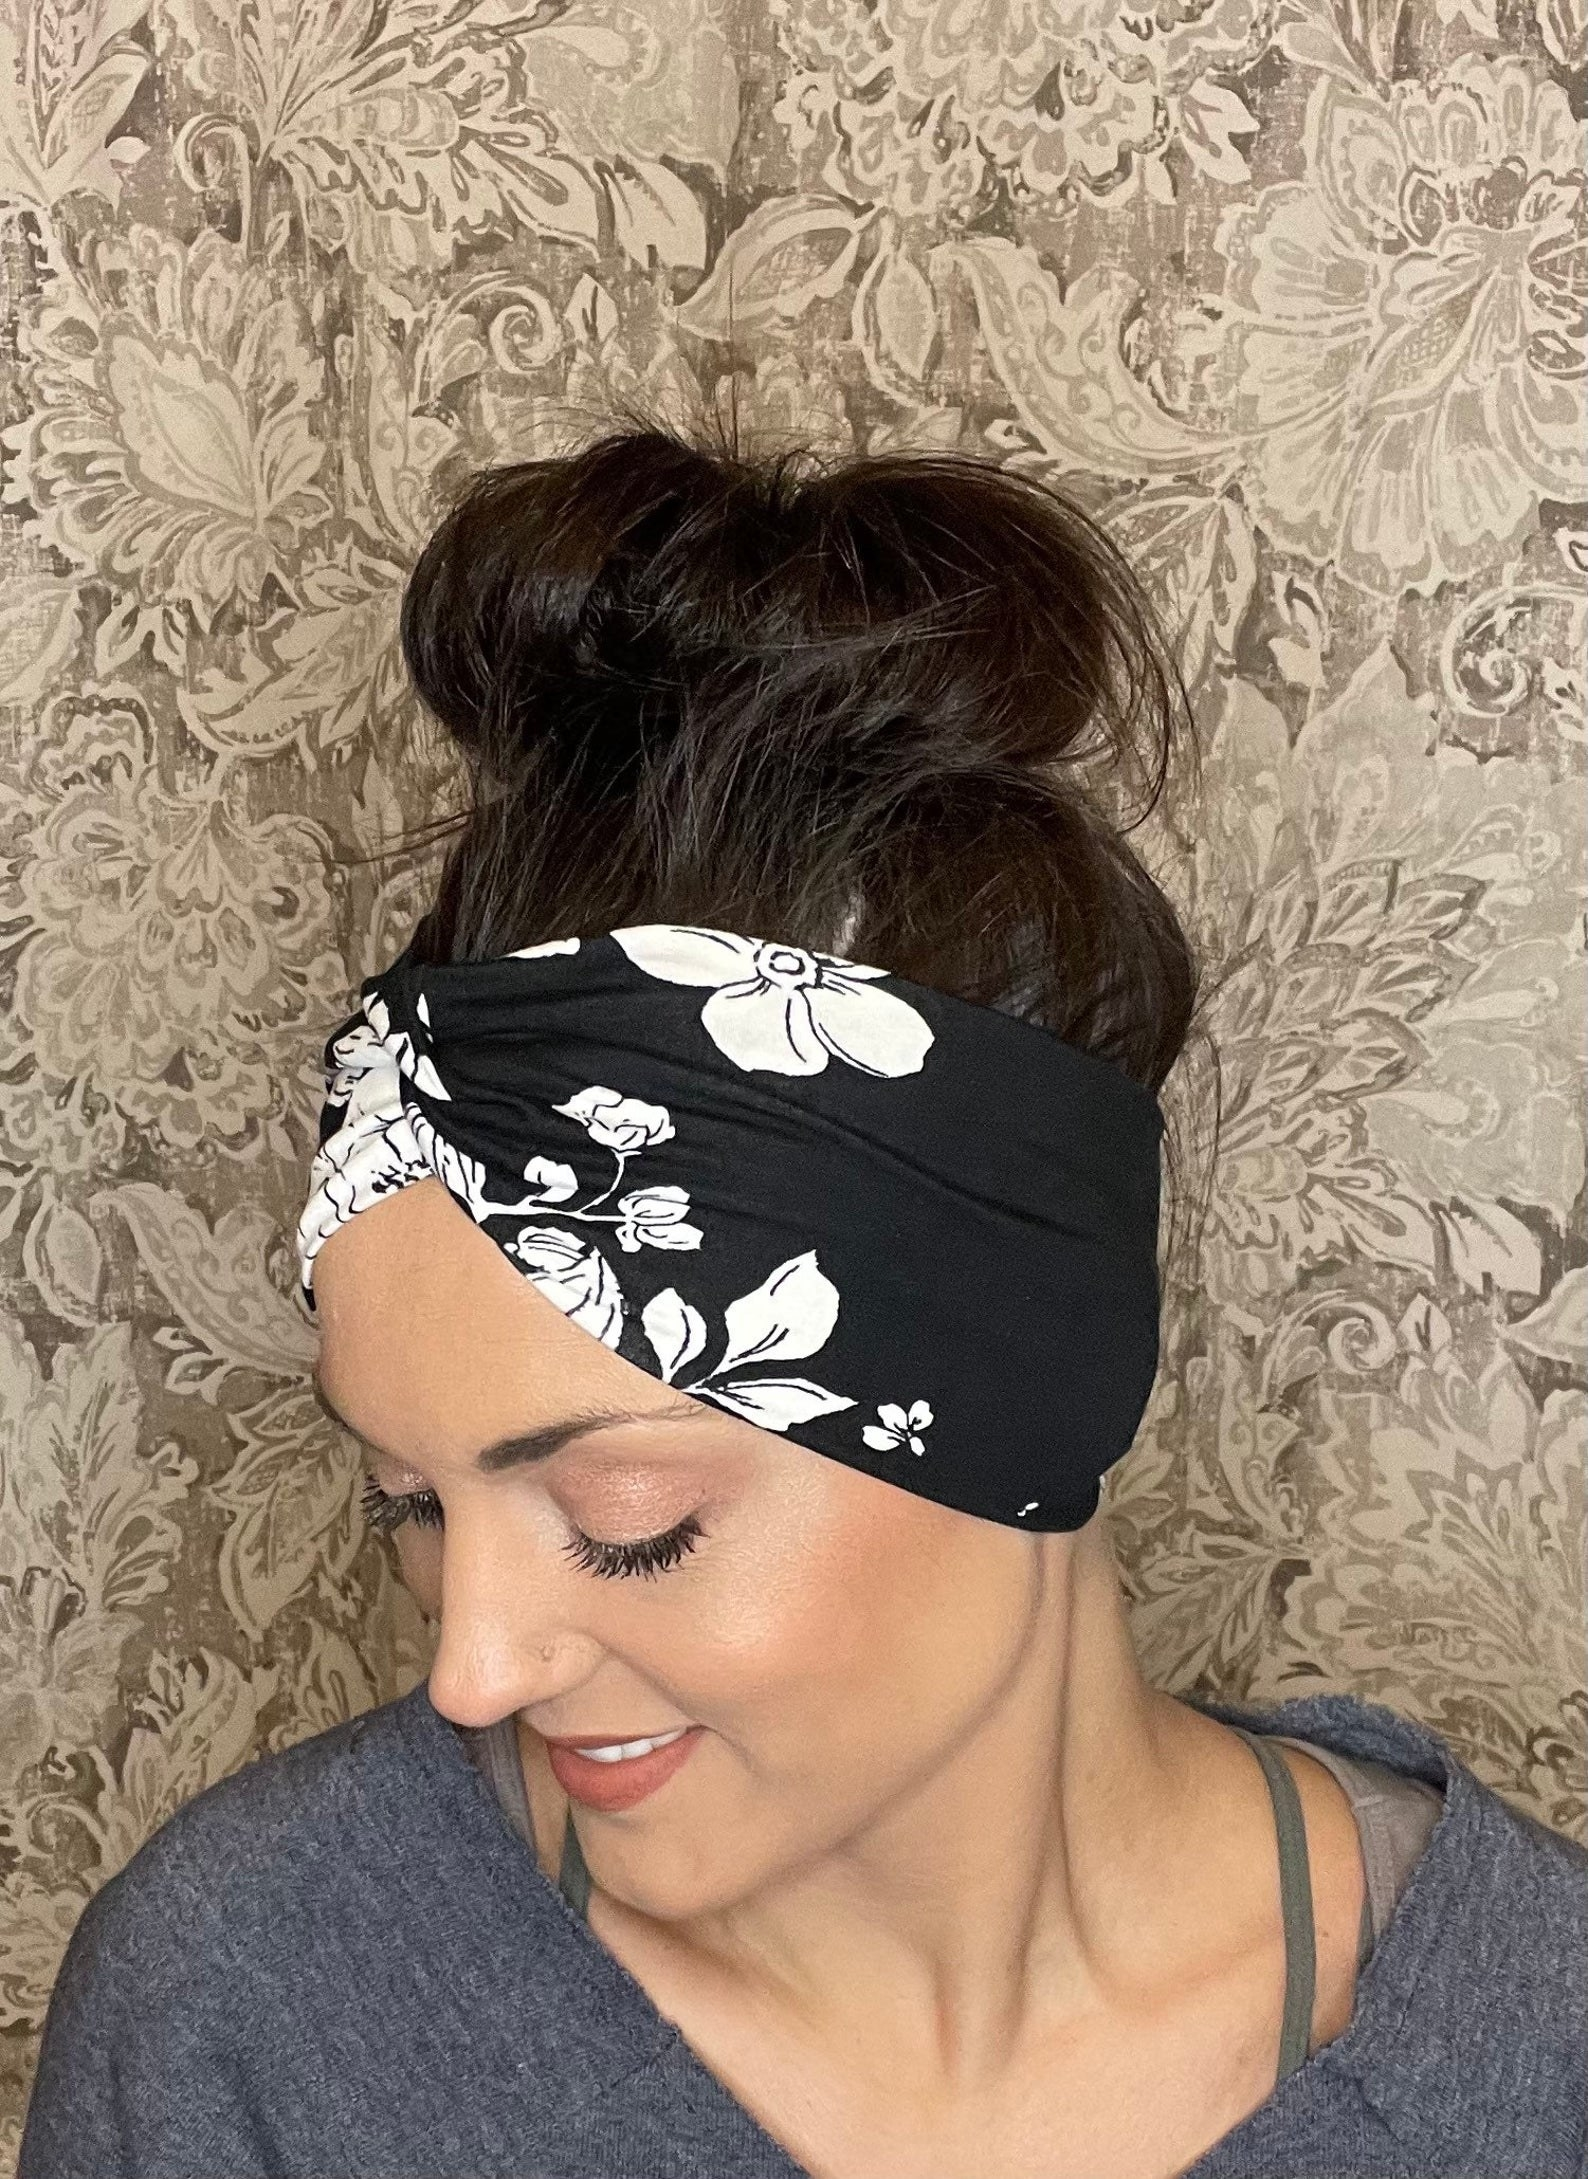 Model wearing black-and-white floral headband